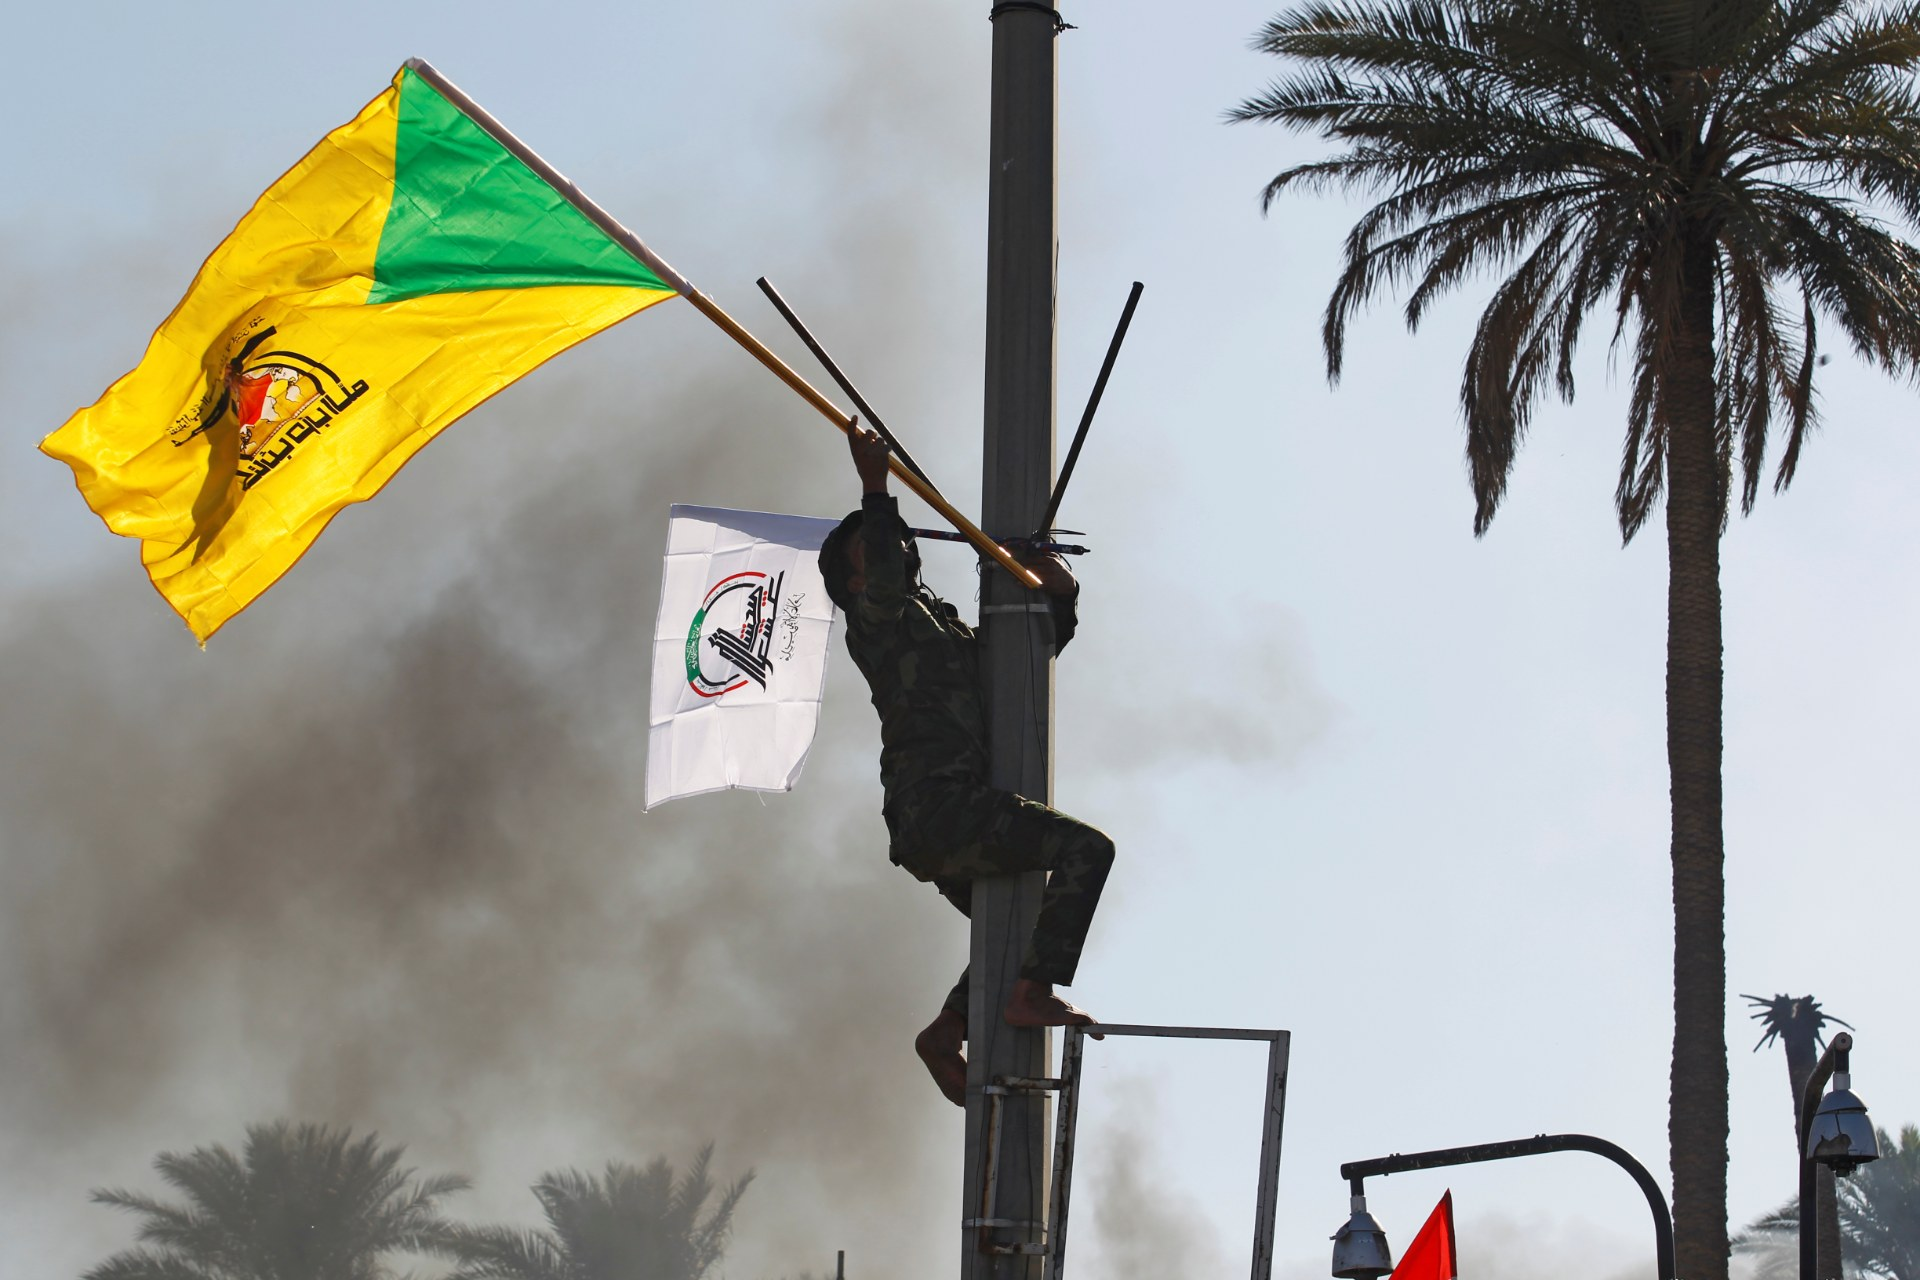 A member of Hashd al-Shaabi paramilitary forces holds a flag of Kataeb Hezbollah militia group during a protest to condemn air strikes on their bases, in Baghdad in December (Reuters)